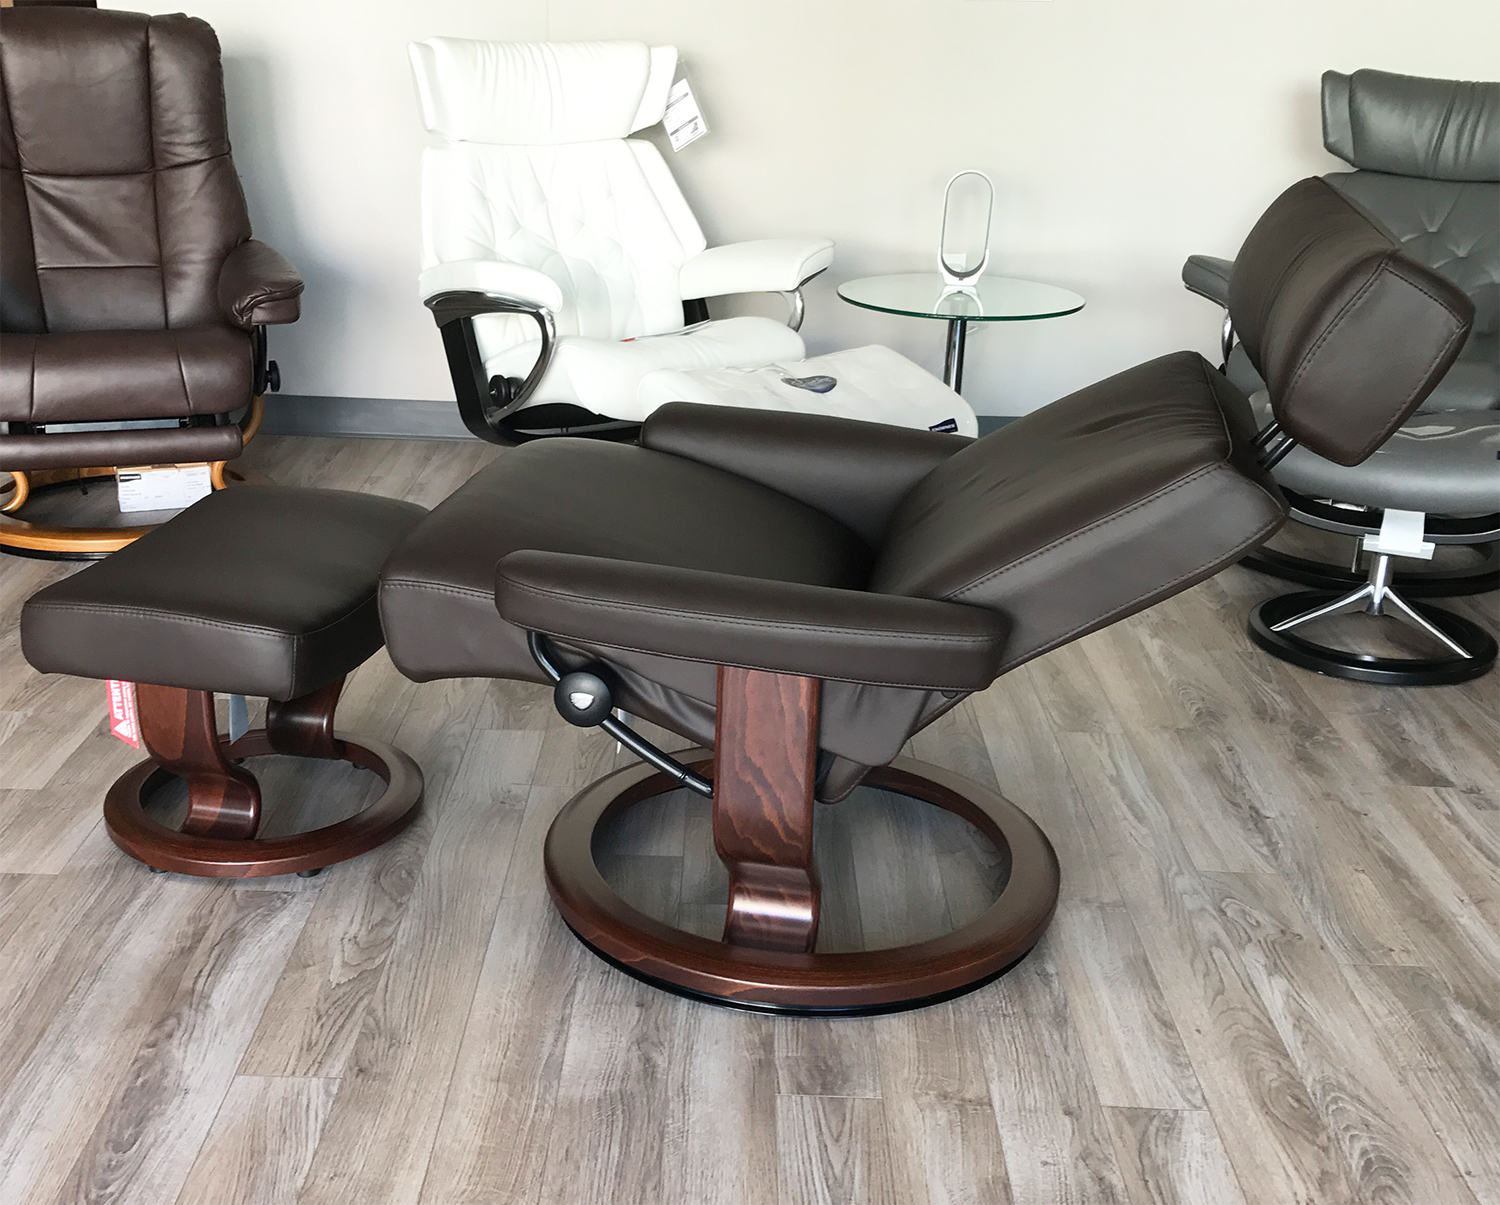 Stressless Large Orion (Taurus) Paloma Mocca Leather Recliner Chair and Ottoman by Ekornes